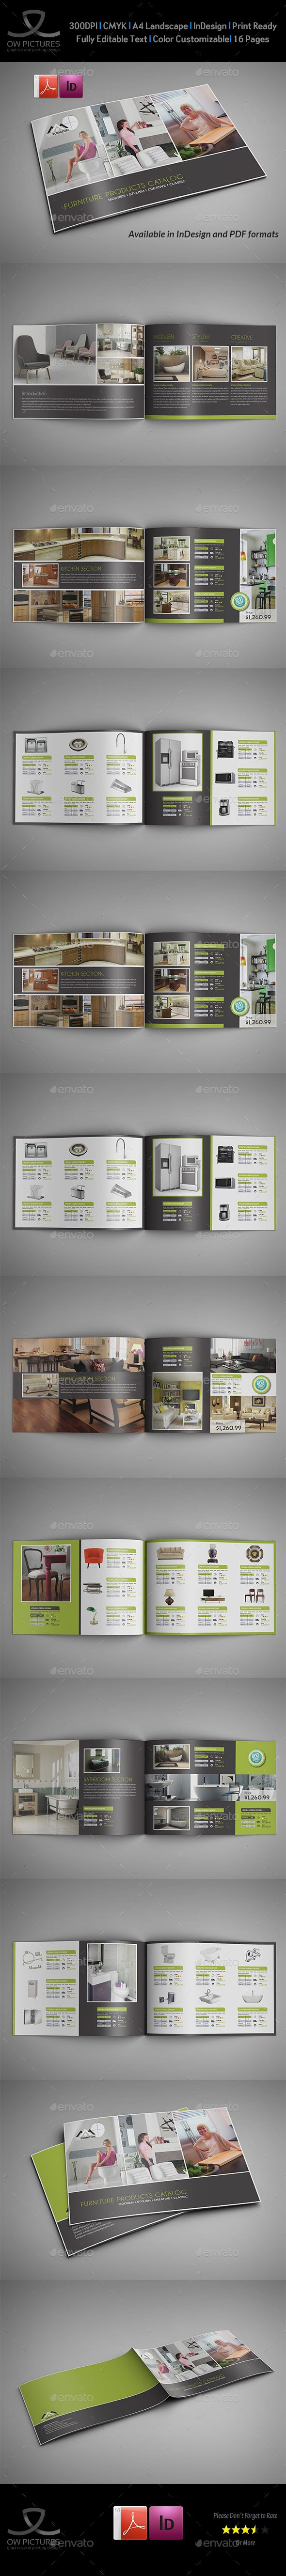 Furniture Products Catalog Brochure - 16 Pages Template InDesign INDD #design Download: http://graphicriver.net/item/furniture-products-catalog-brochure-16-pages/13338545?ref=ksioks